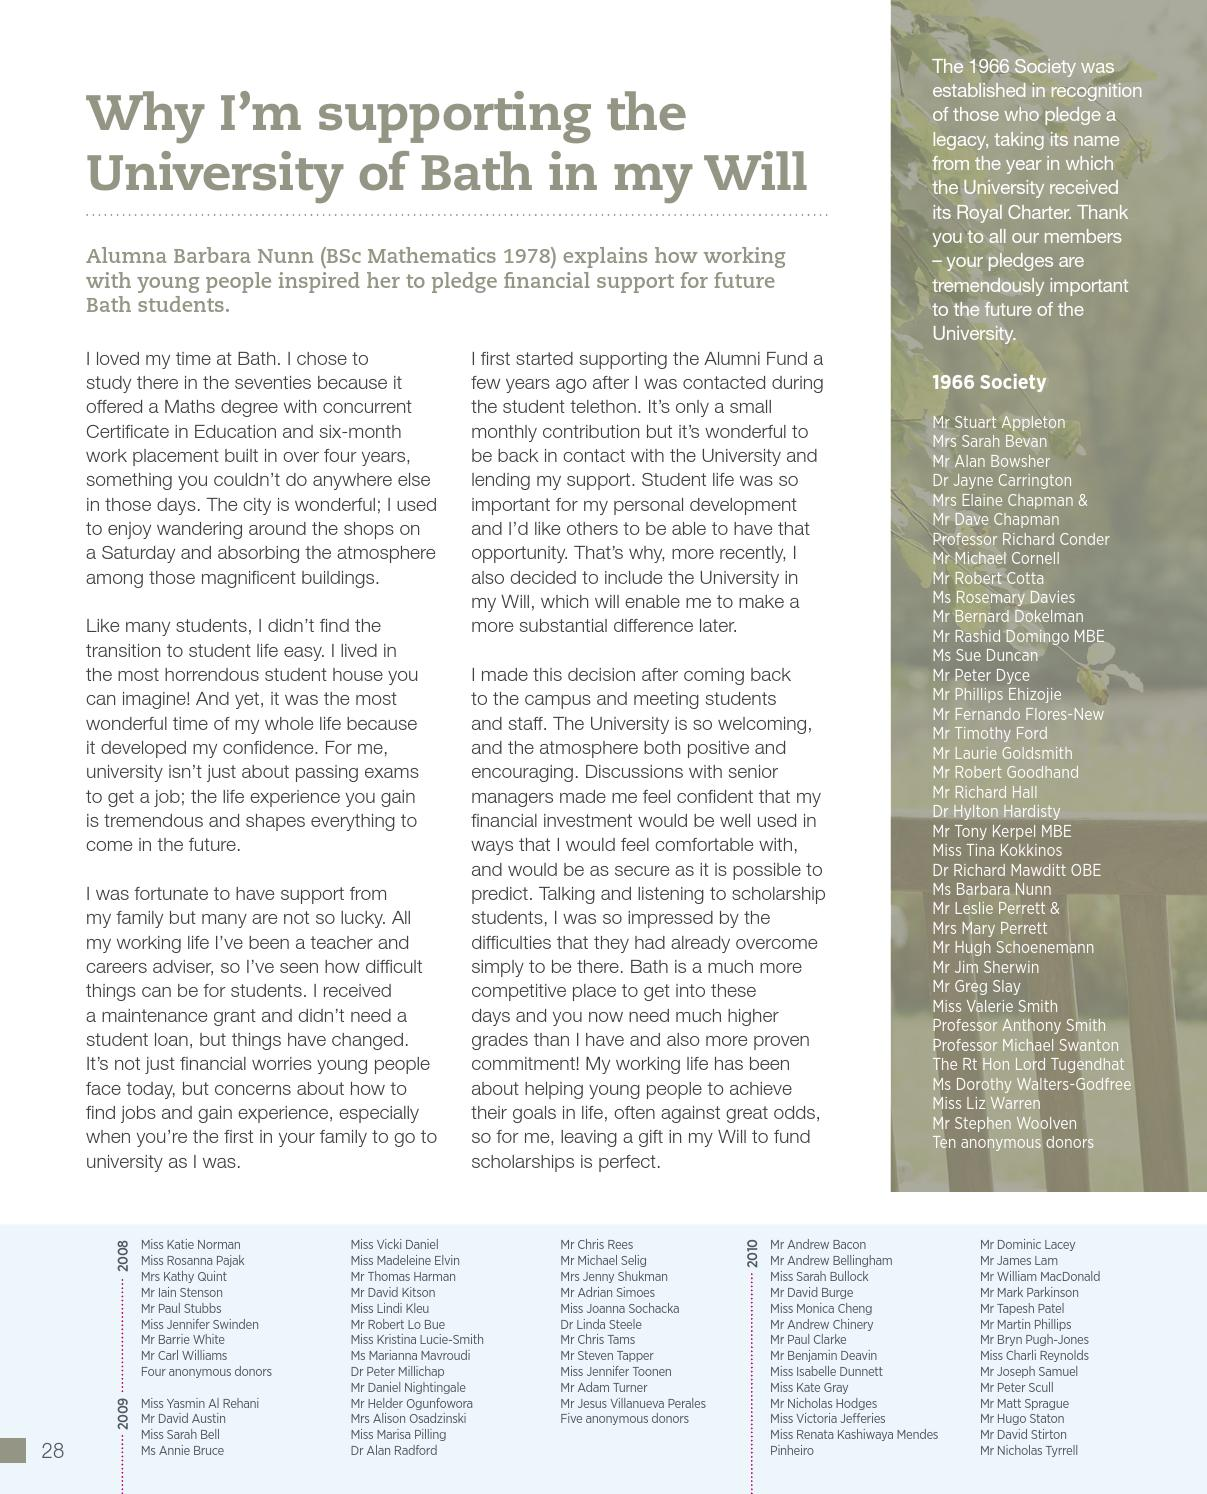 Donor report 2013 by University of bath - issuu